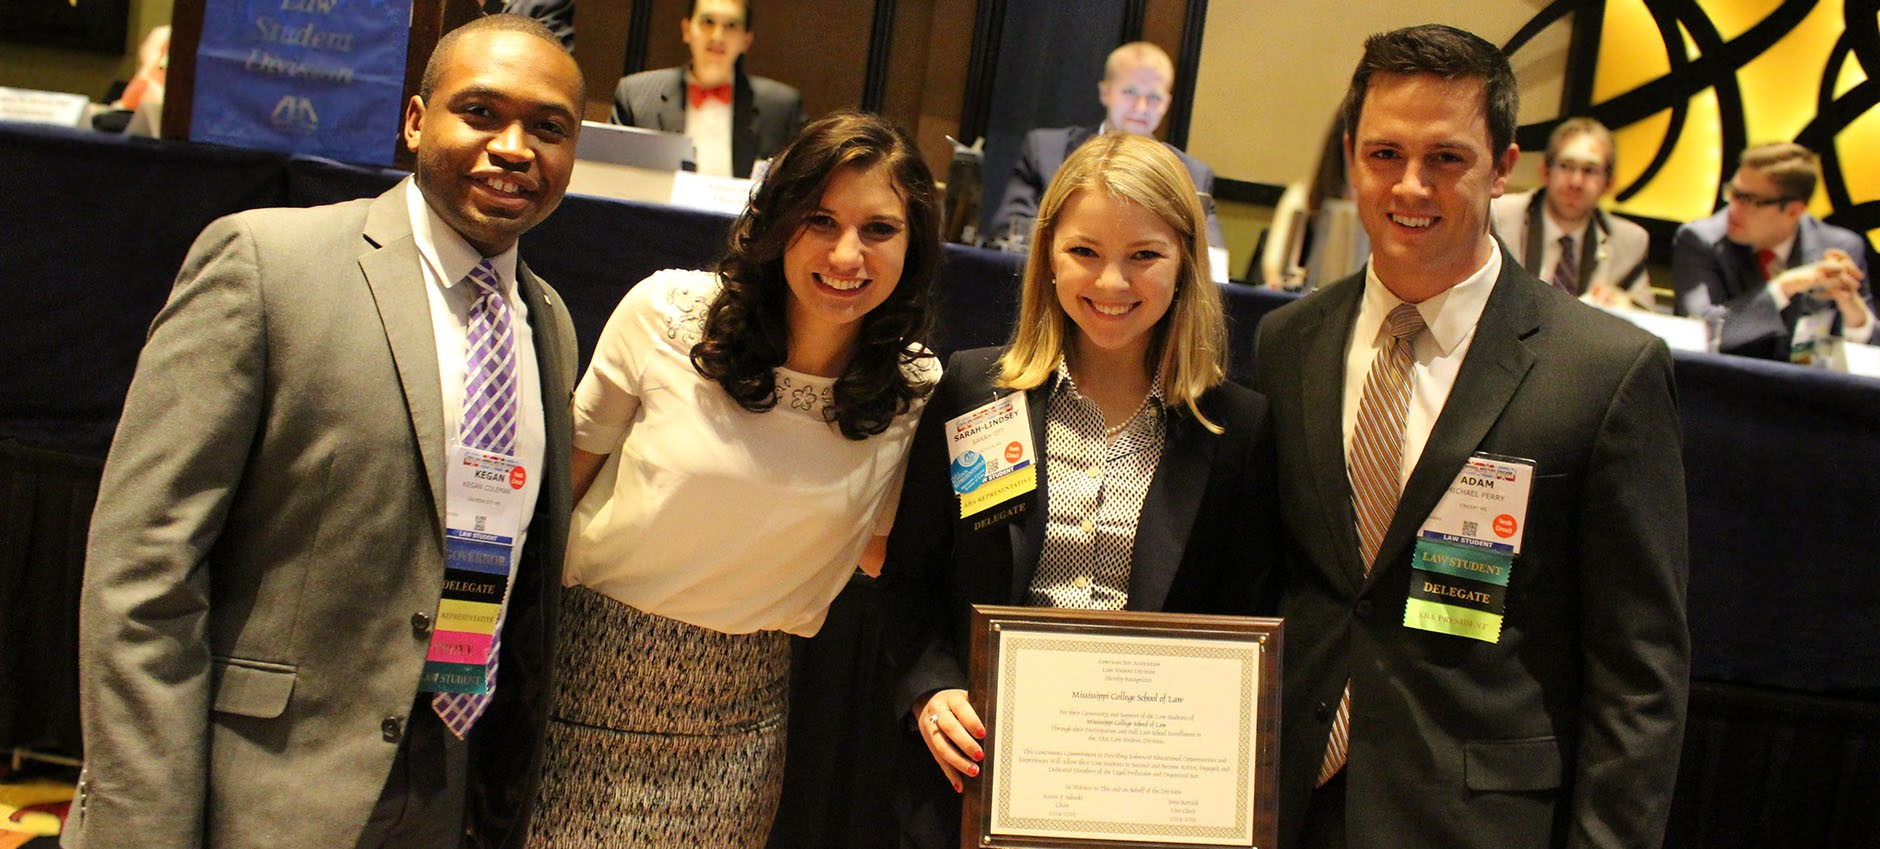 Law students receiving awards at ABA Annual Meeting.